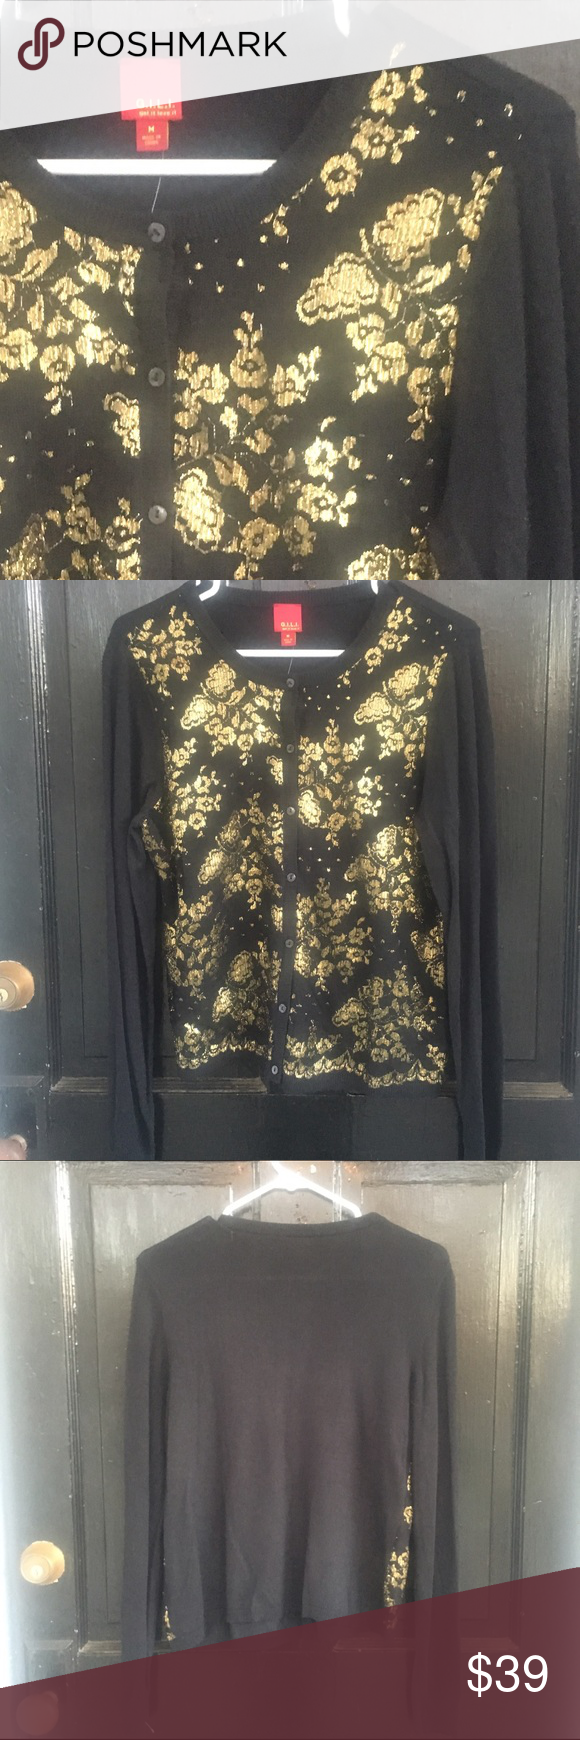 NWT G.I.L.I. Black and metallic gold lace cardigan NWT Black and ...